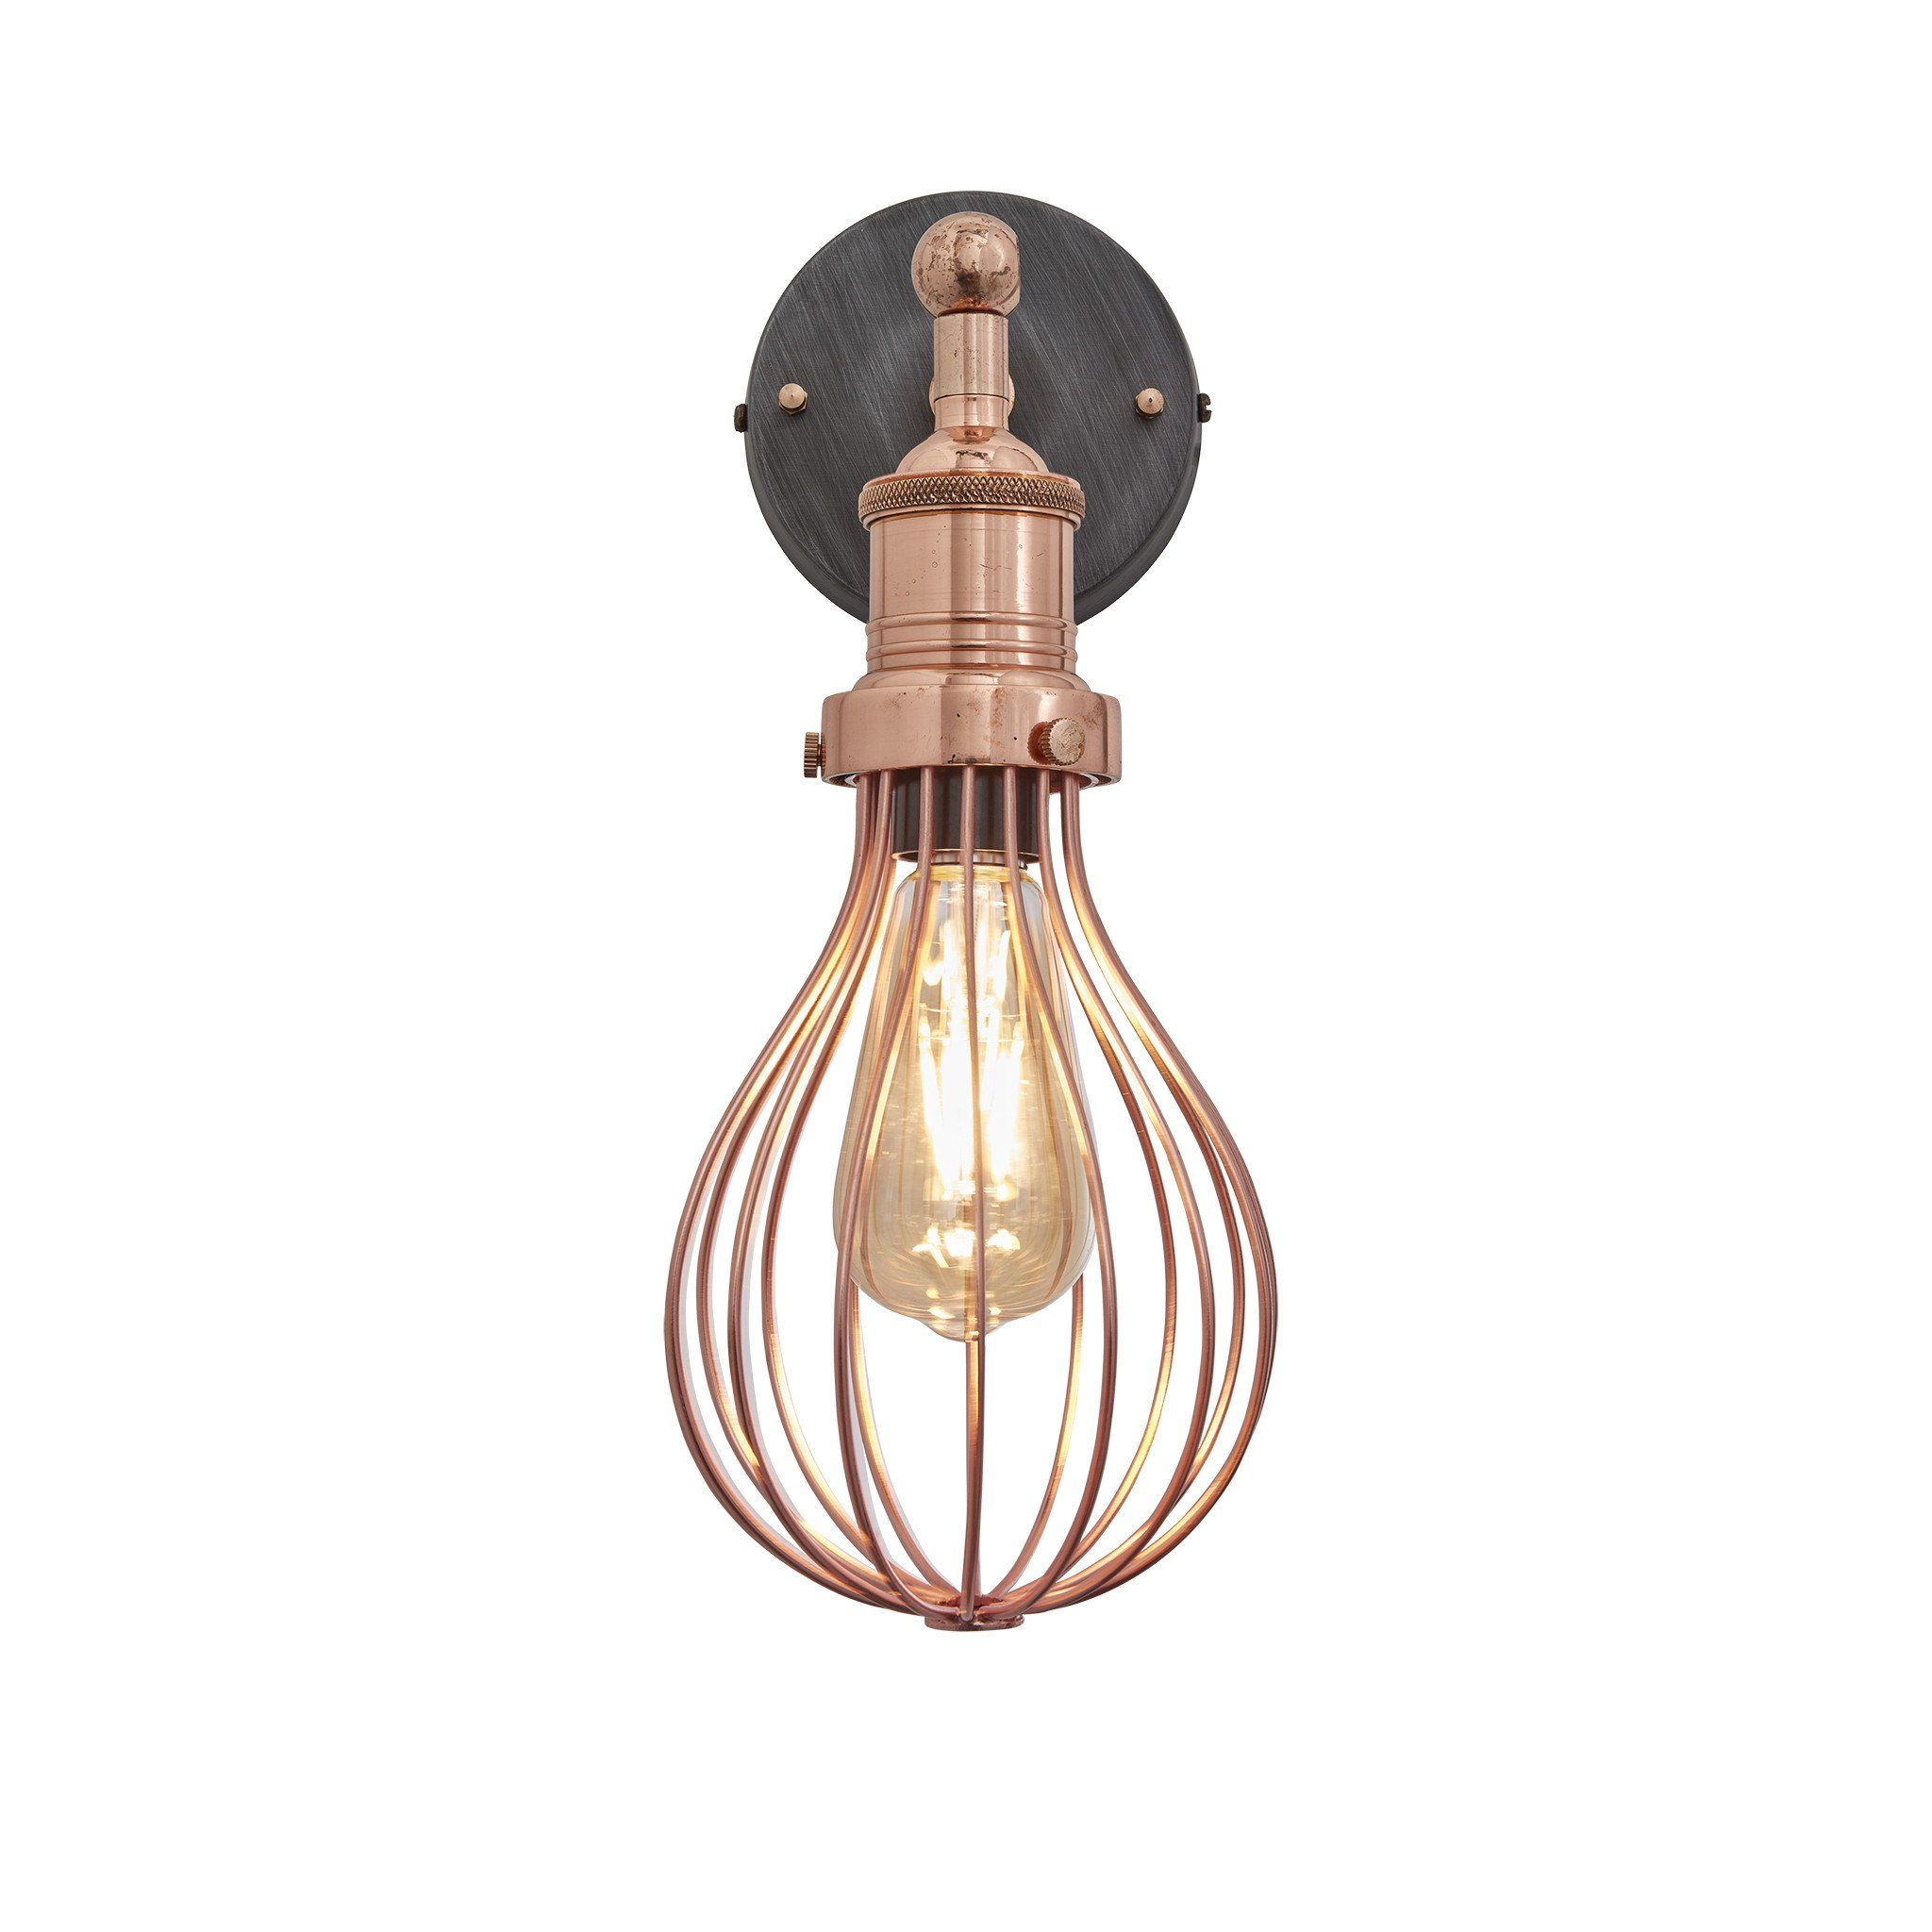 Vintage balloon cage retro sconce wall light copper balloon wall our balloon wall light can also come supplied with a pewter holder https arubaitofo Choice Image